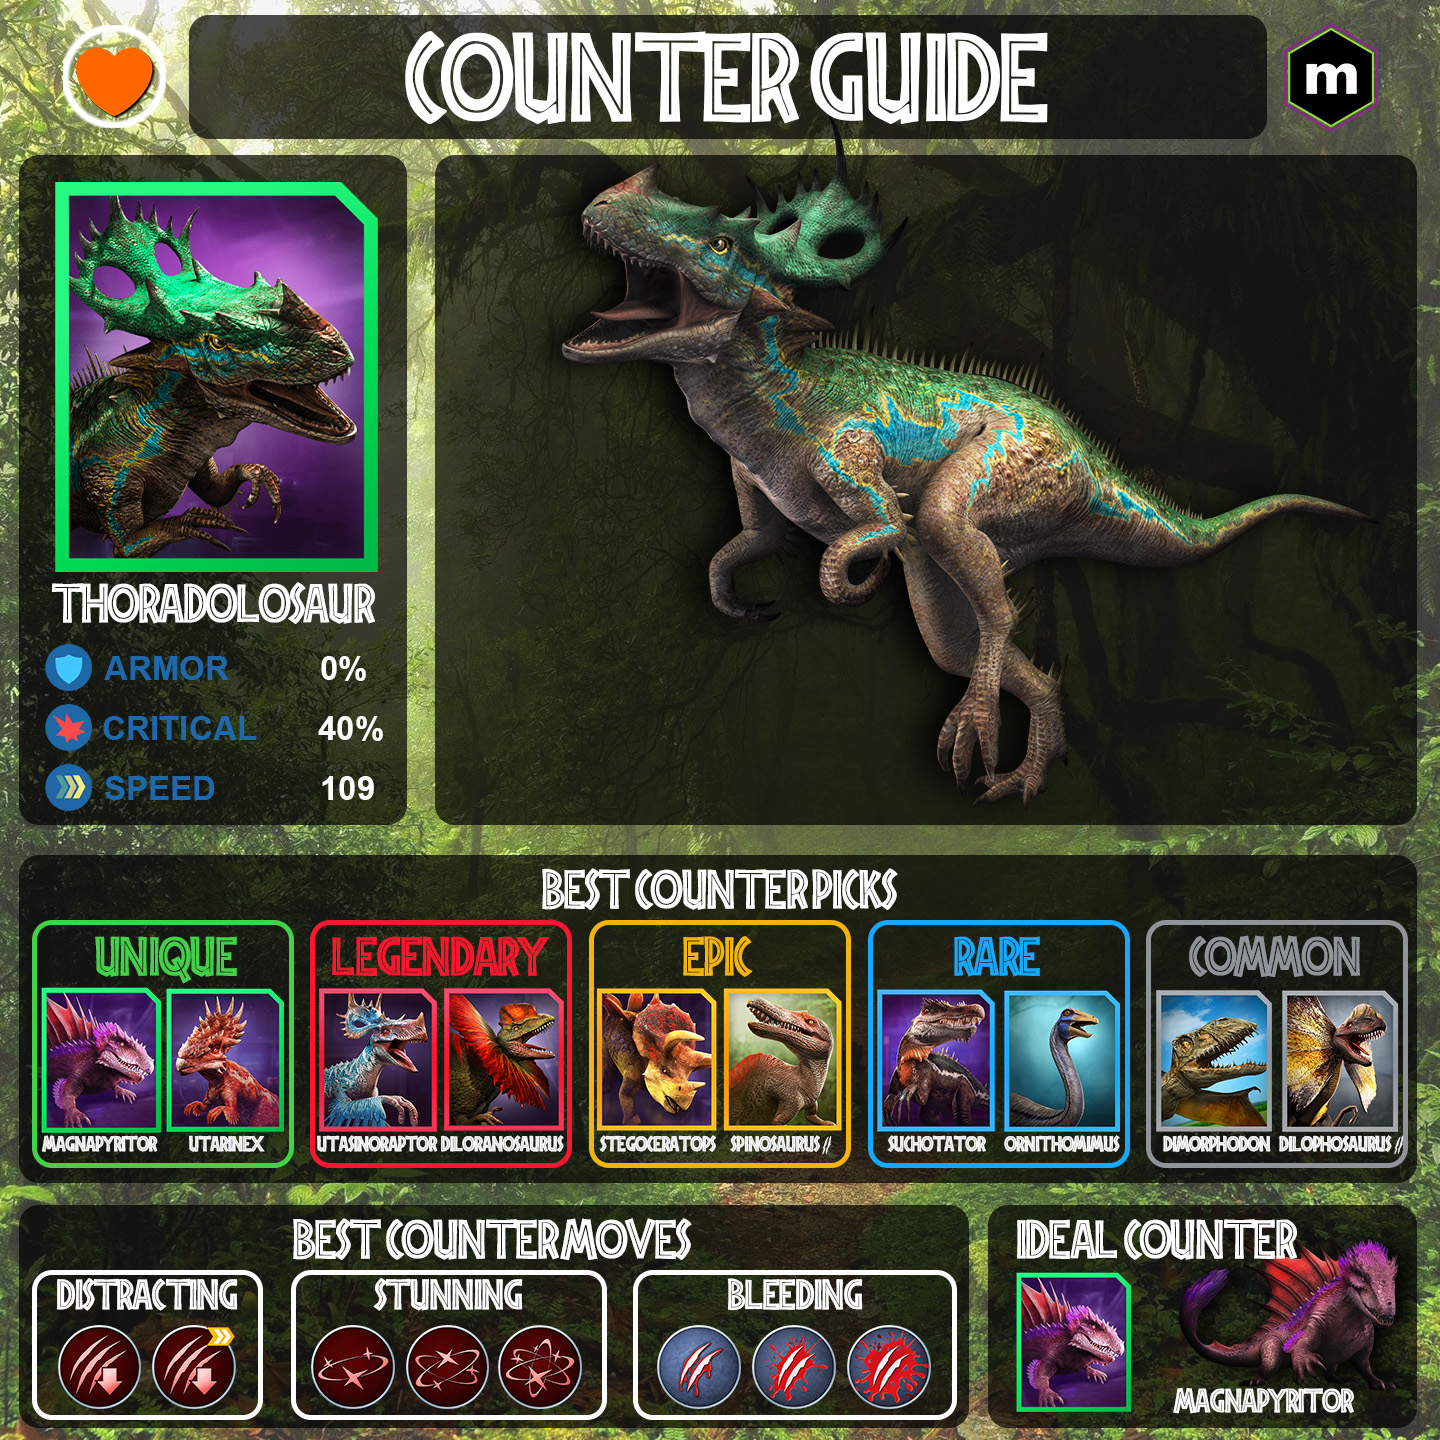 Thoradolosaur counter guide Infographic